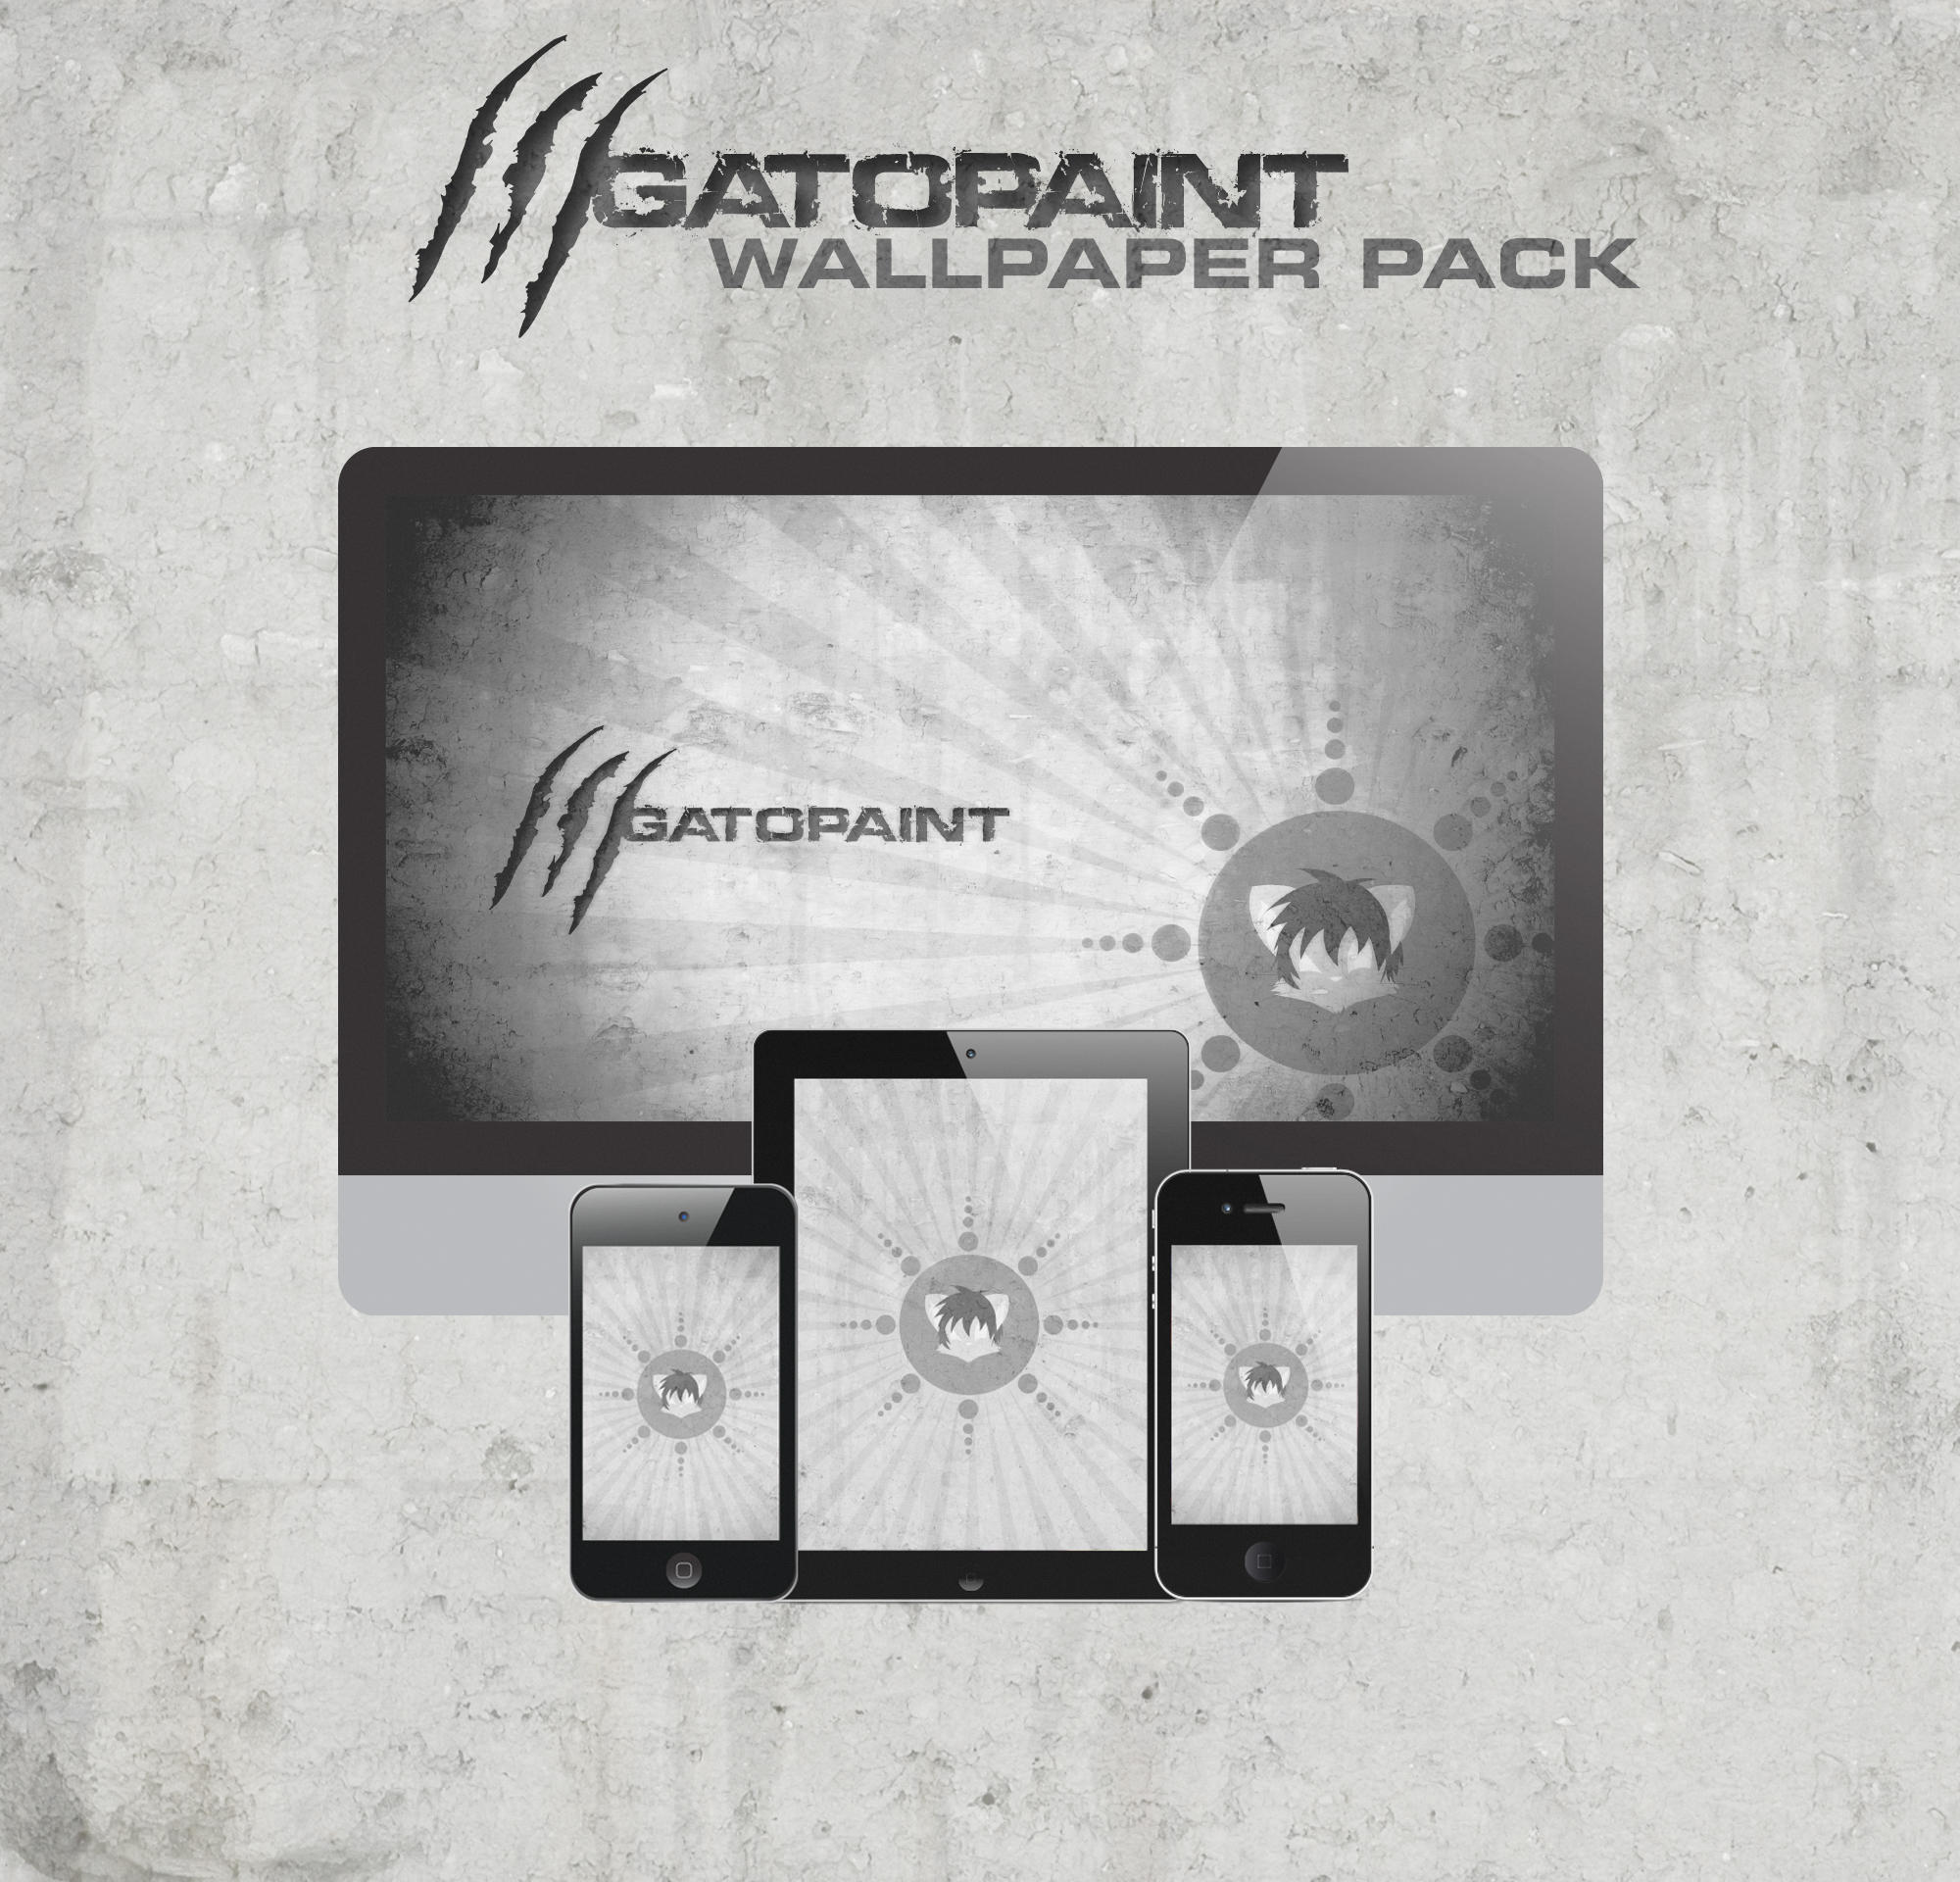 Gatopaint Retina-ready Wallpaper Pack by YangWatanabe